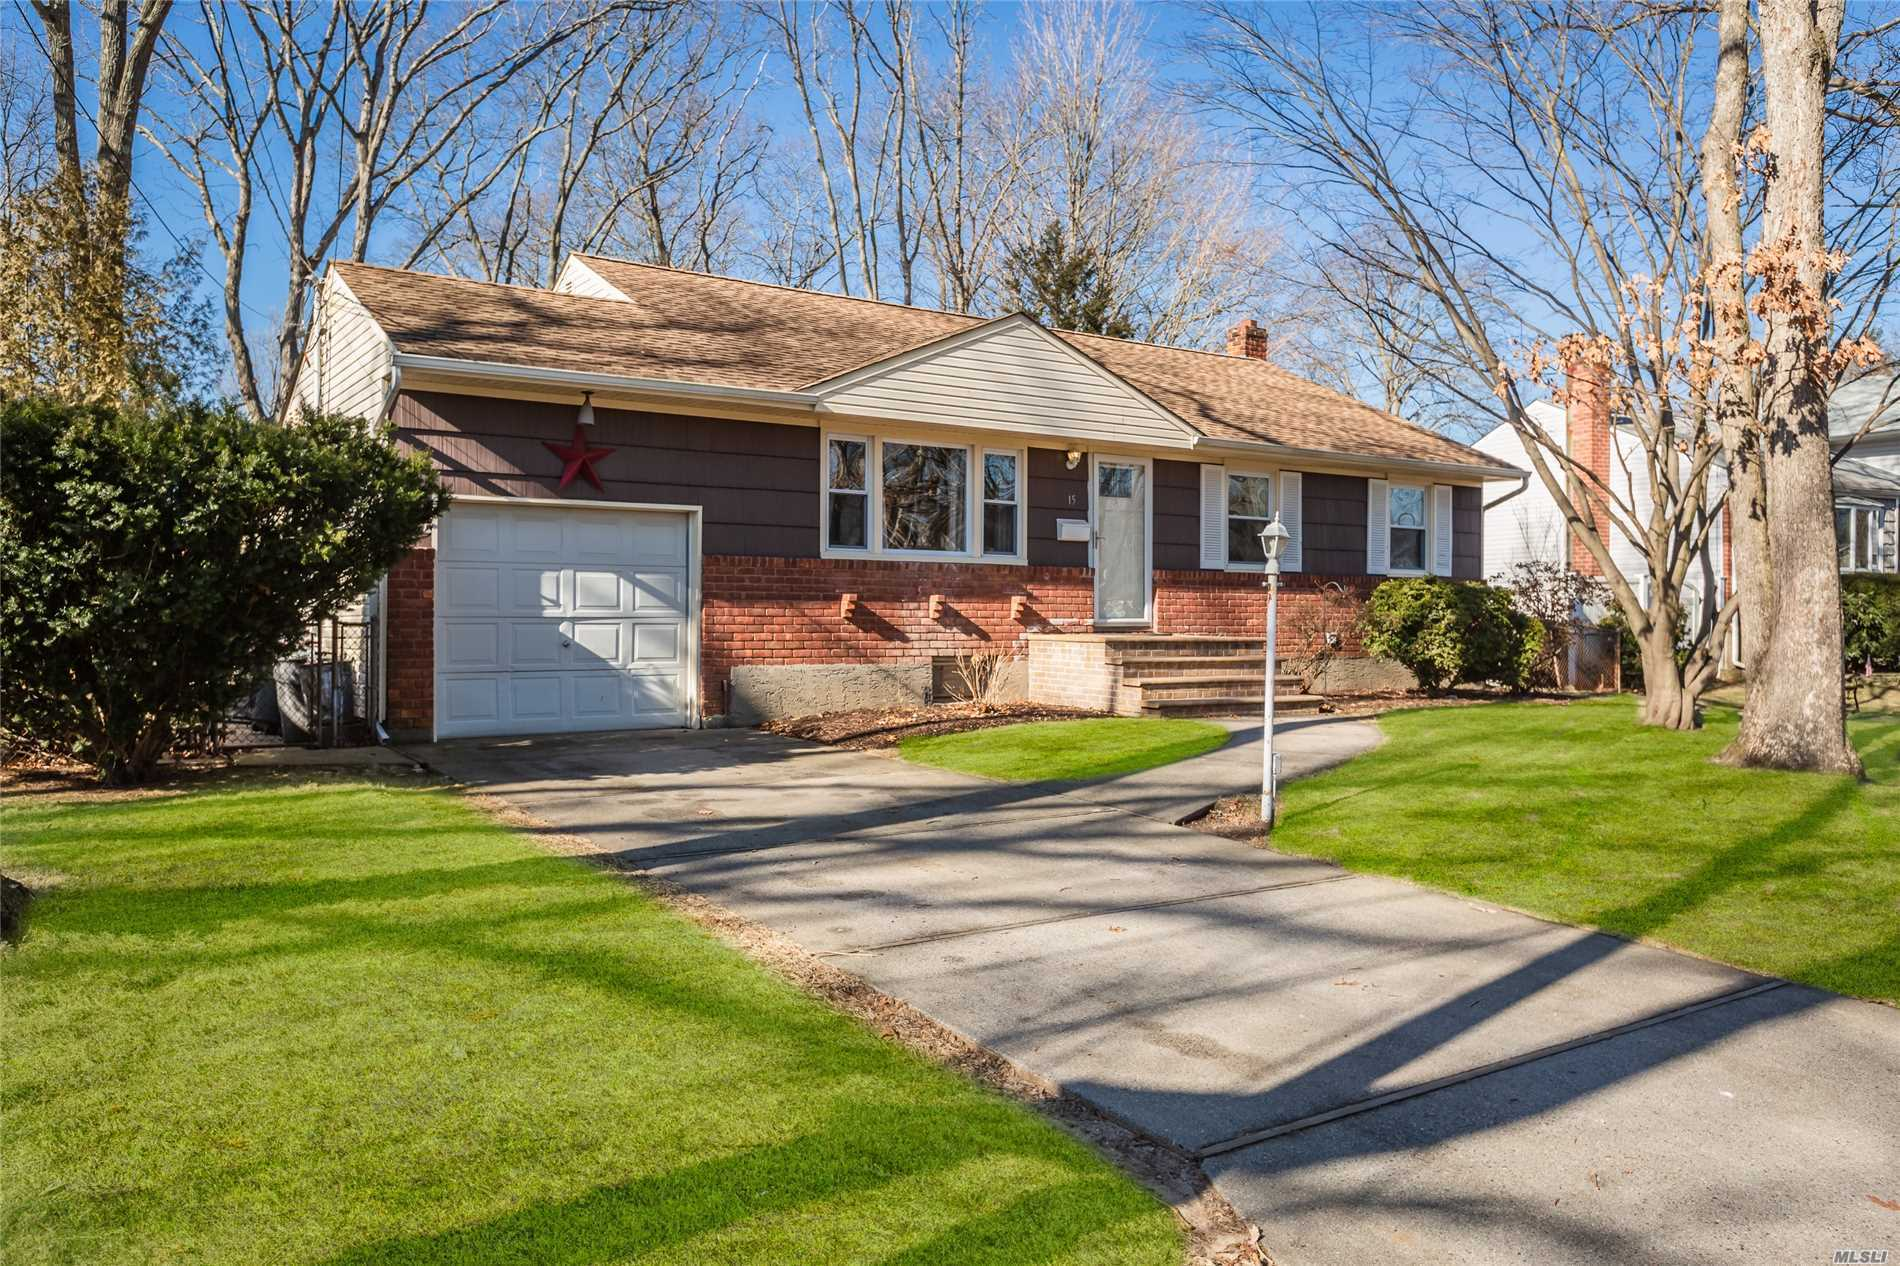 Offered In Value Ranch $399, 000-$448, 875.  You Must See! Charming Ranch Perfect For First Time Home Buyer Or Downsizer, Great Flow, Cac, Oak Floors, 2 Renovated Baths, Renovated Basement, Great Flat Yard W/Brick Patio, Fence, Wonderful Neighborhood, Gas And On Demand H20 Tank. Don't Miss This One - It Won't Last!